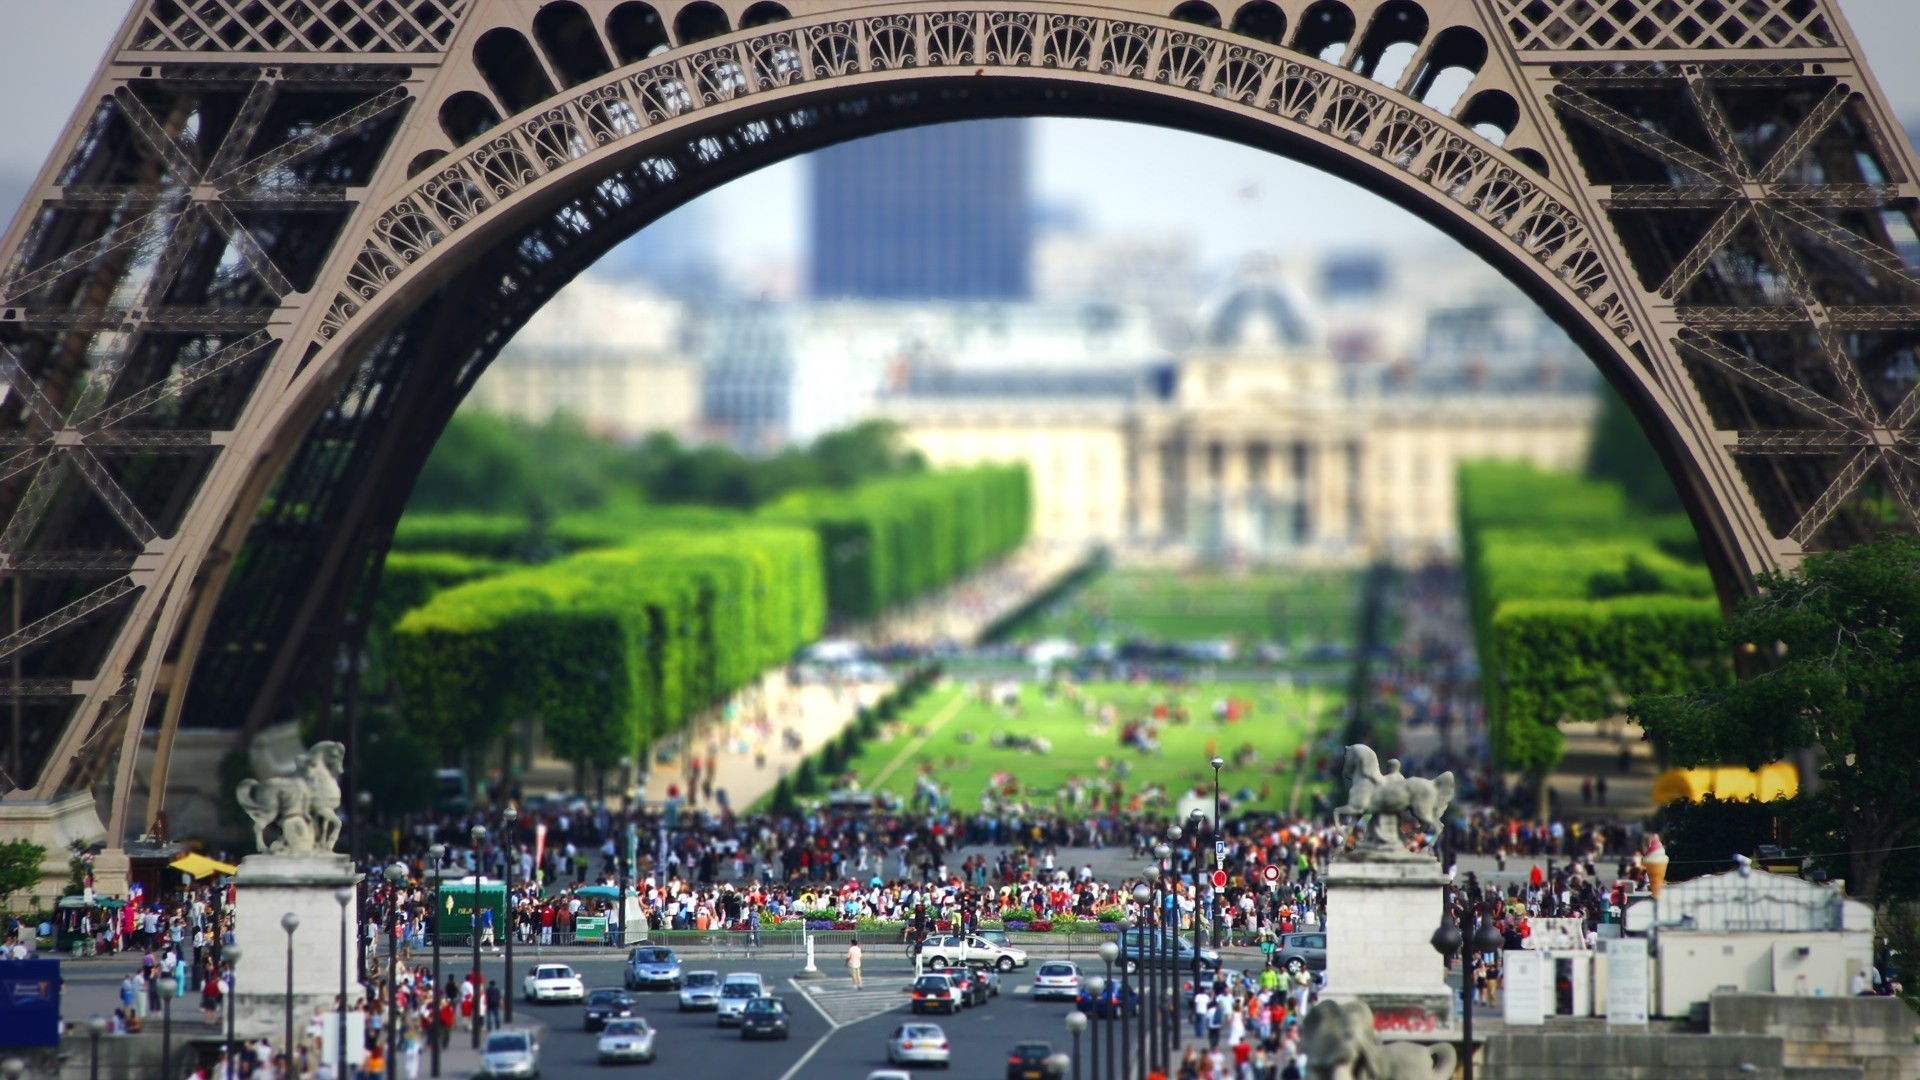 Tilt shift photo at the foot of the Eiffel Tower